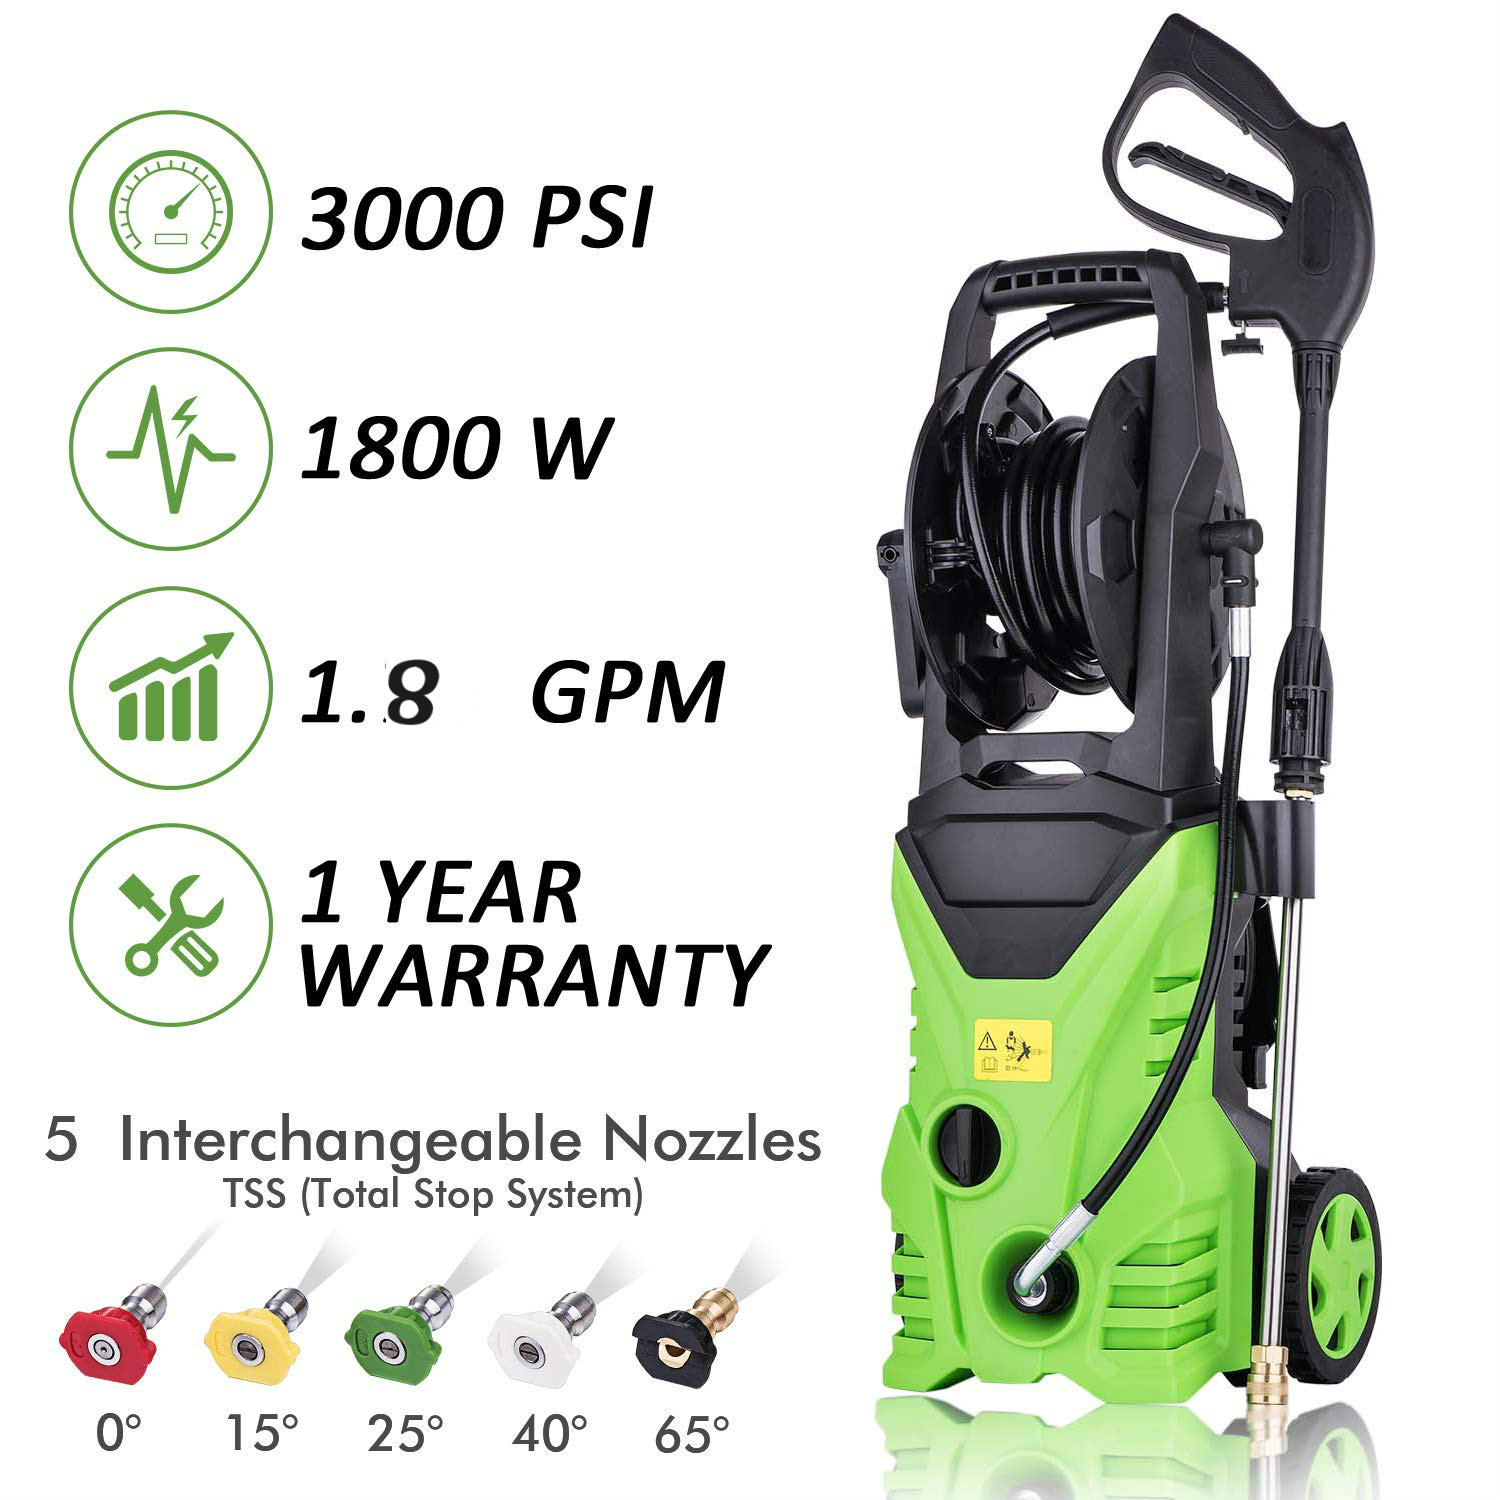 Hifashion Universal Electric Pressure Washer On Sale Soap 1800W 3000 PSI 1.7 GPM with Power Hose Nozzle Gun and 5 Quick-Connect spray tips